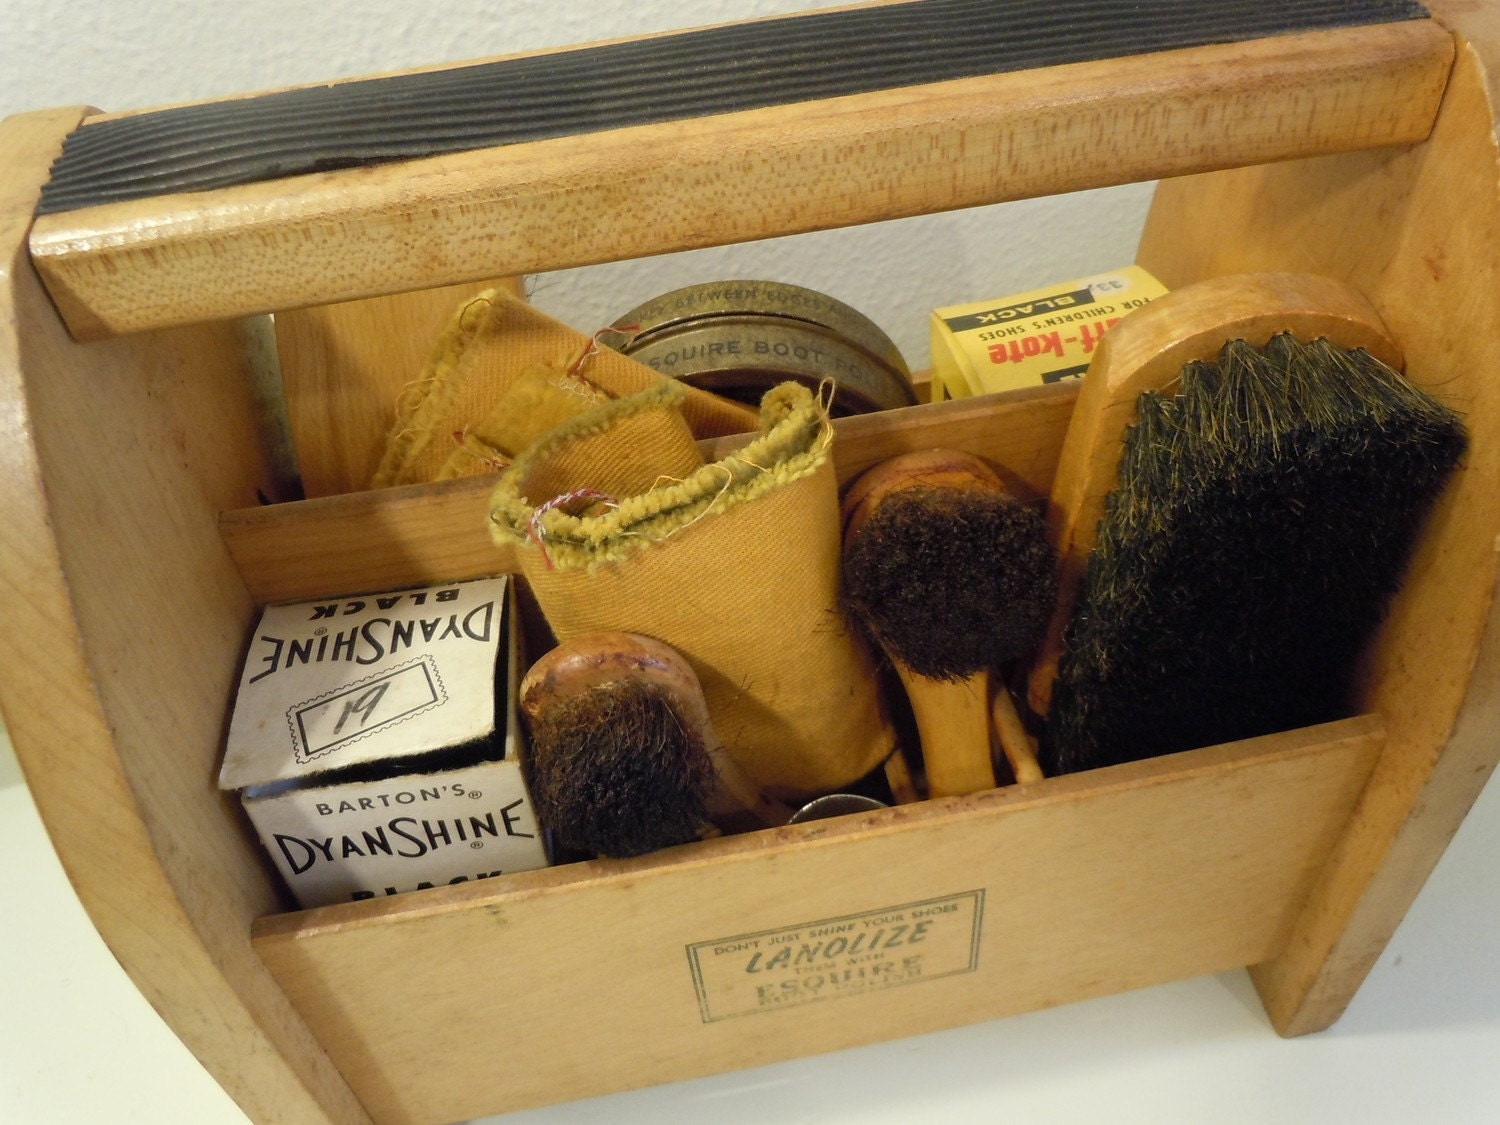 vintage wood shoe shine box kit on sale great man gift under. Black Bedroom Furniture Sets. Home Design Ideas